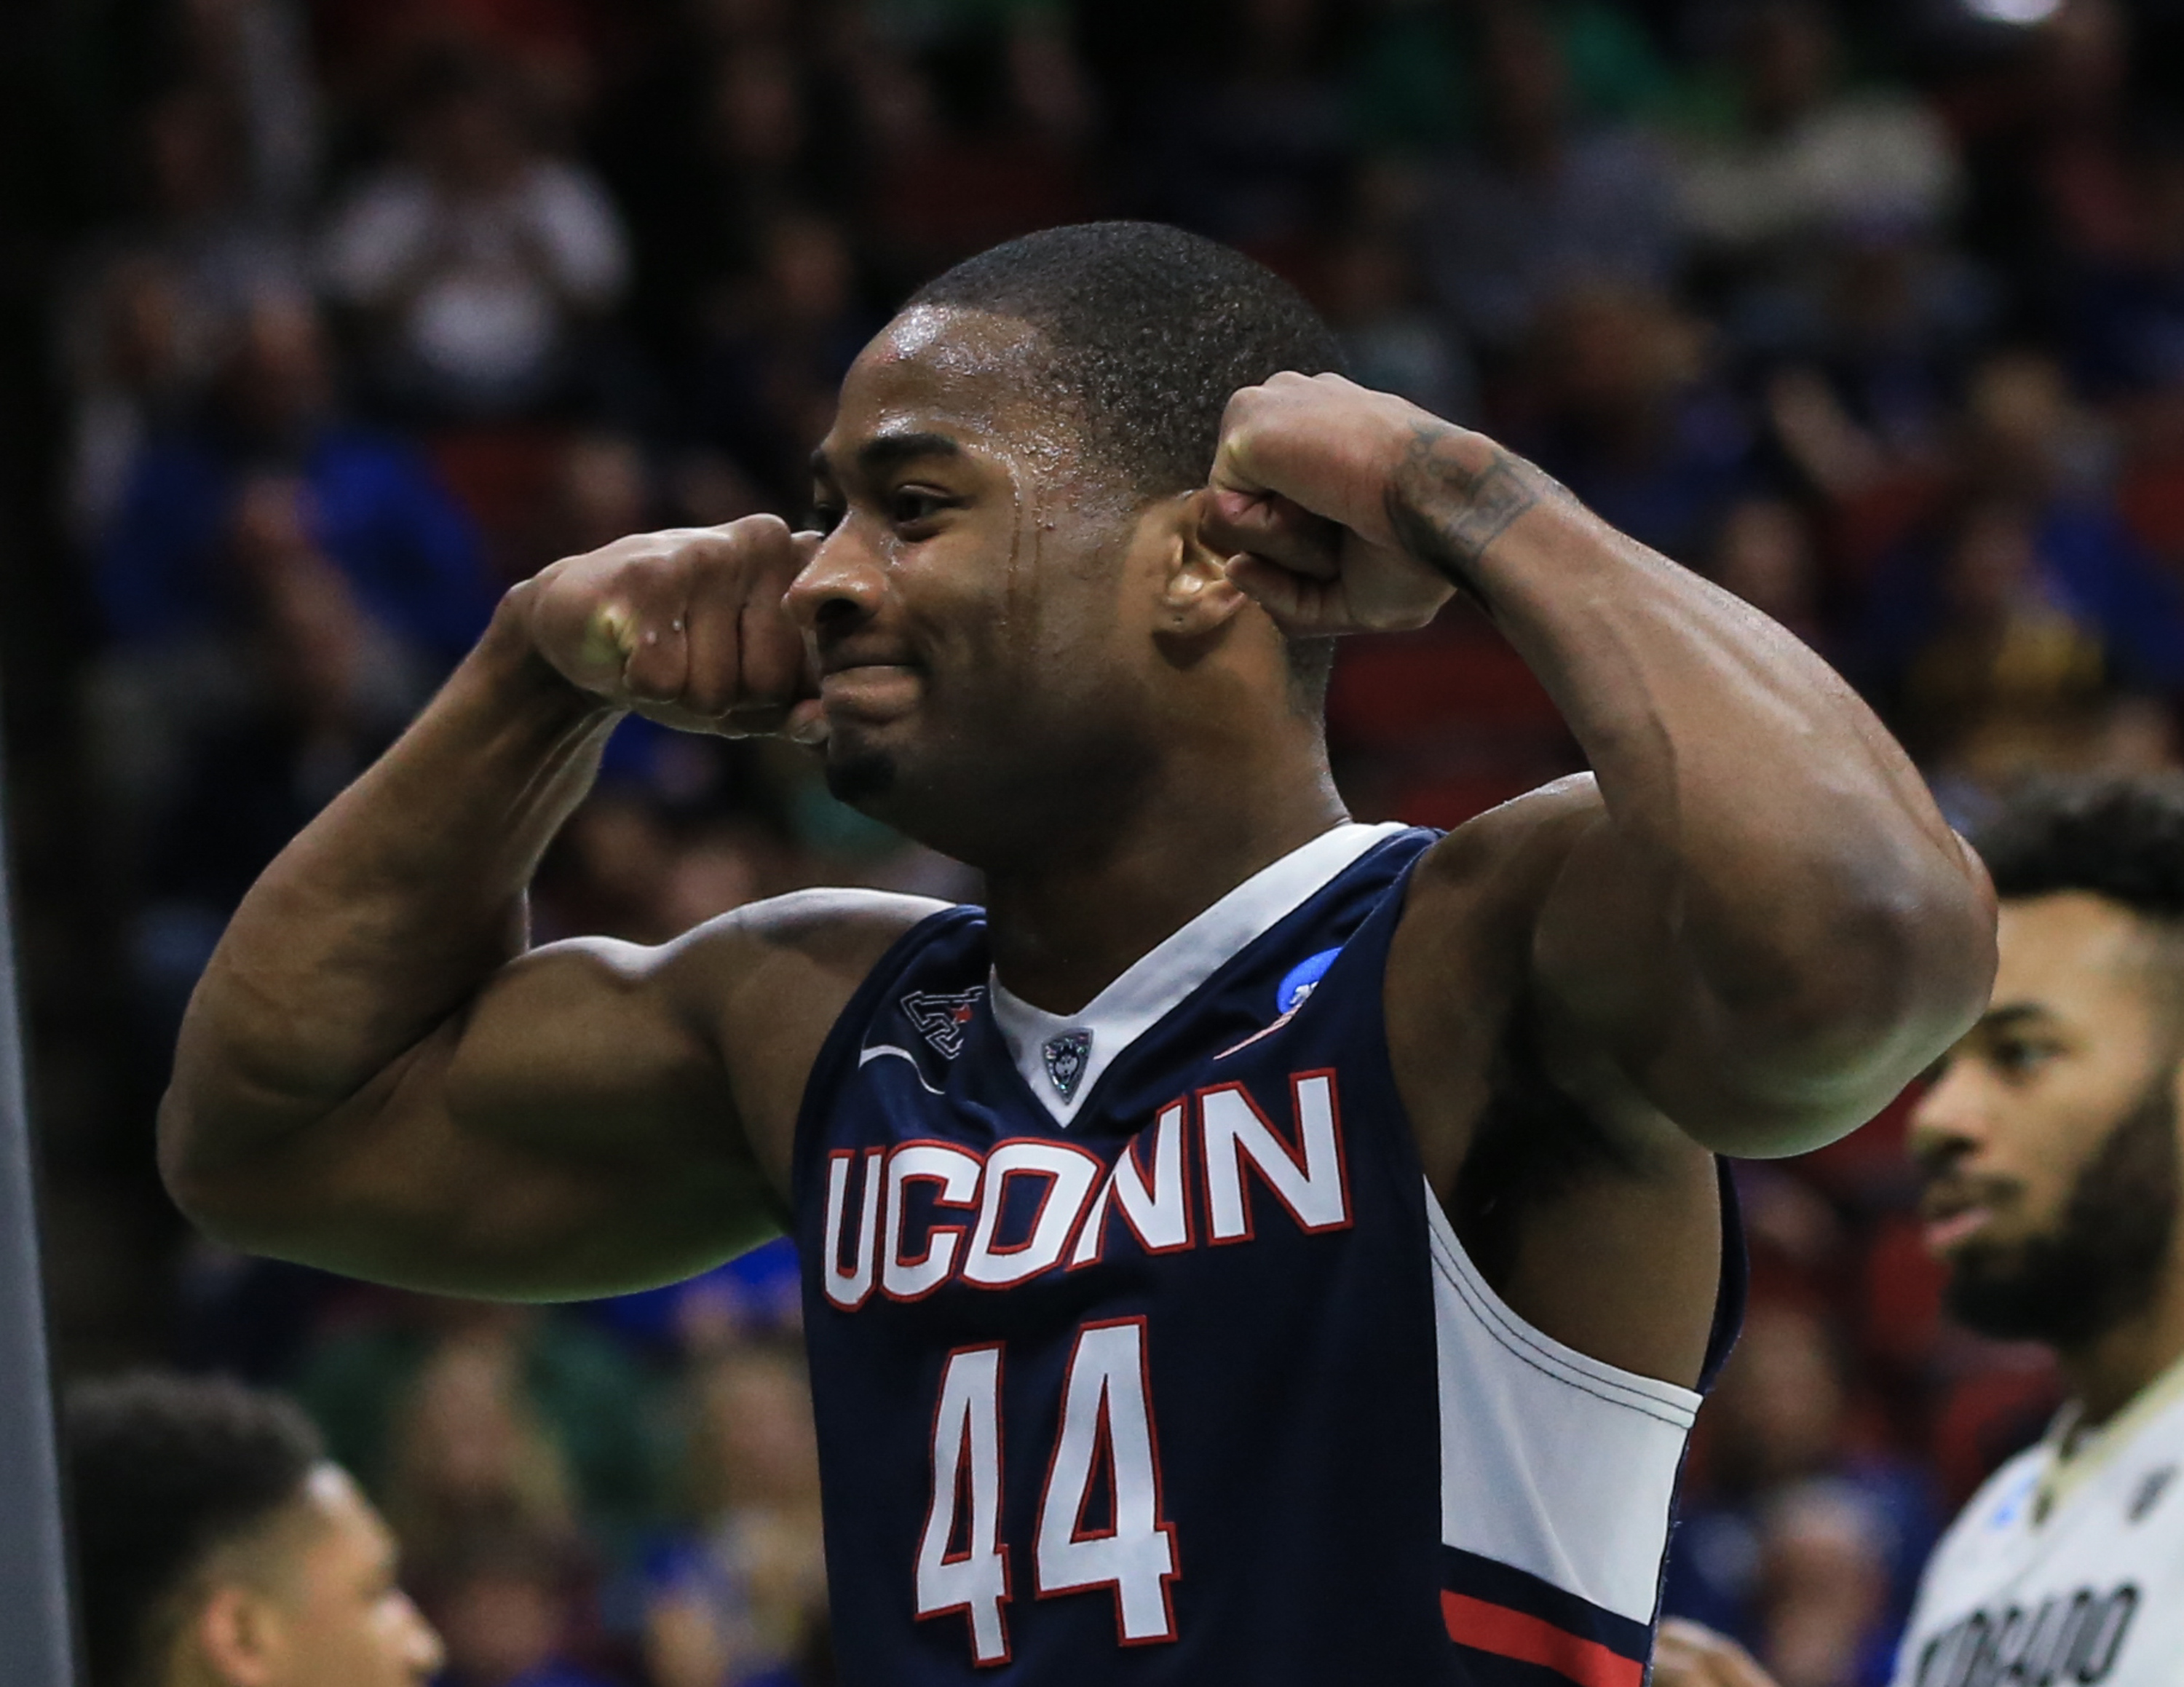 Connecticut's Rodney Purvis  celebrates after a Colorado foul against him, during a first-round men's college basketball game in the NCAA Tournament in Des Moines, Iowa, Thursday, March 17, 2016. Connecticut won 74-67. (AP Photo/Nati Harnik)